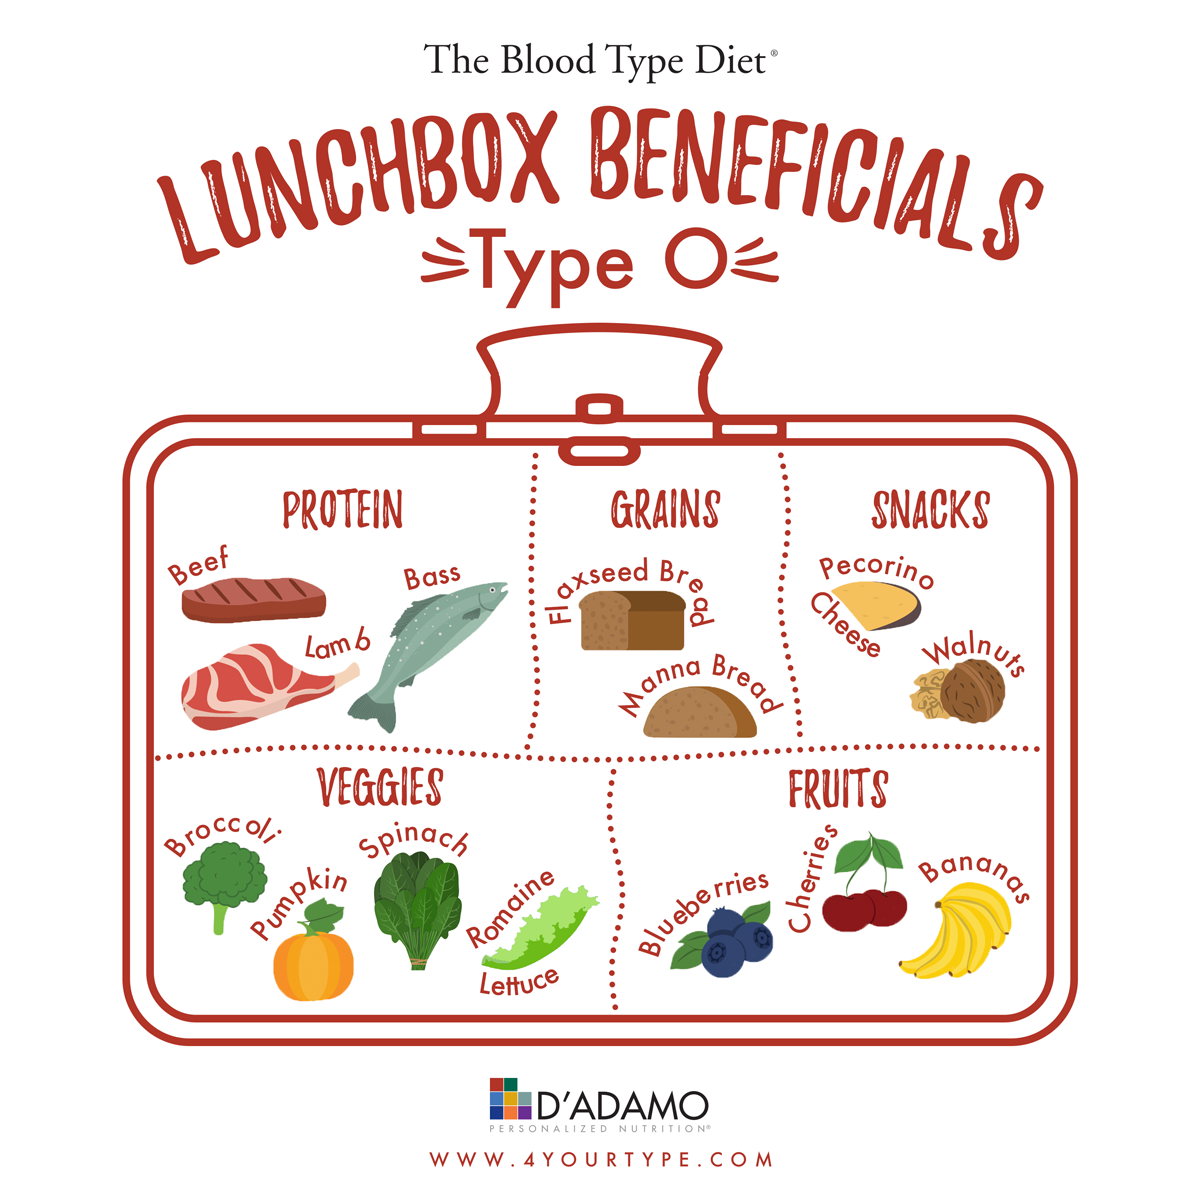 Lunchbox Beneficials Blood Type O